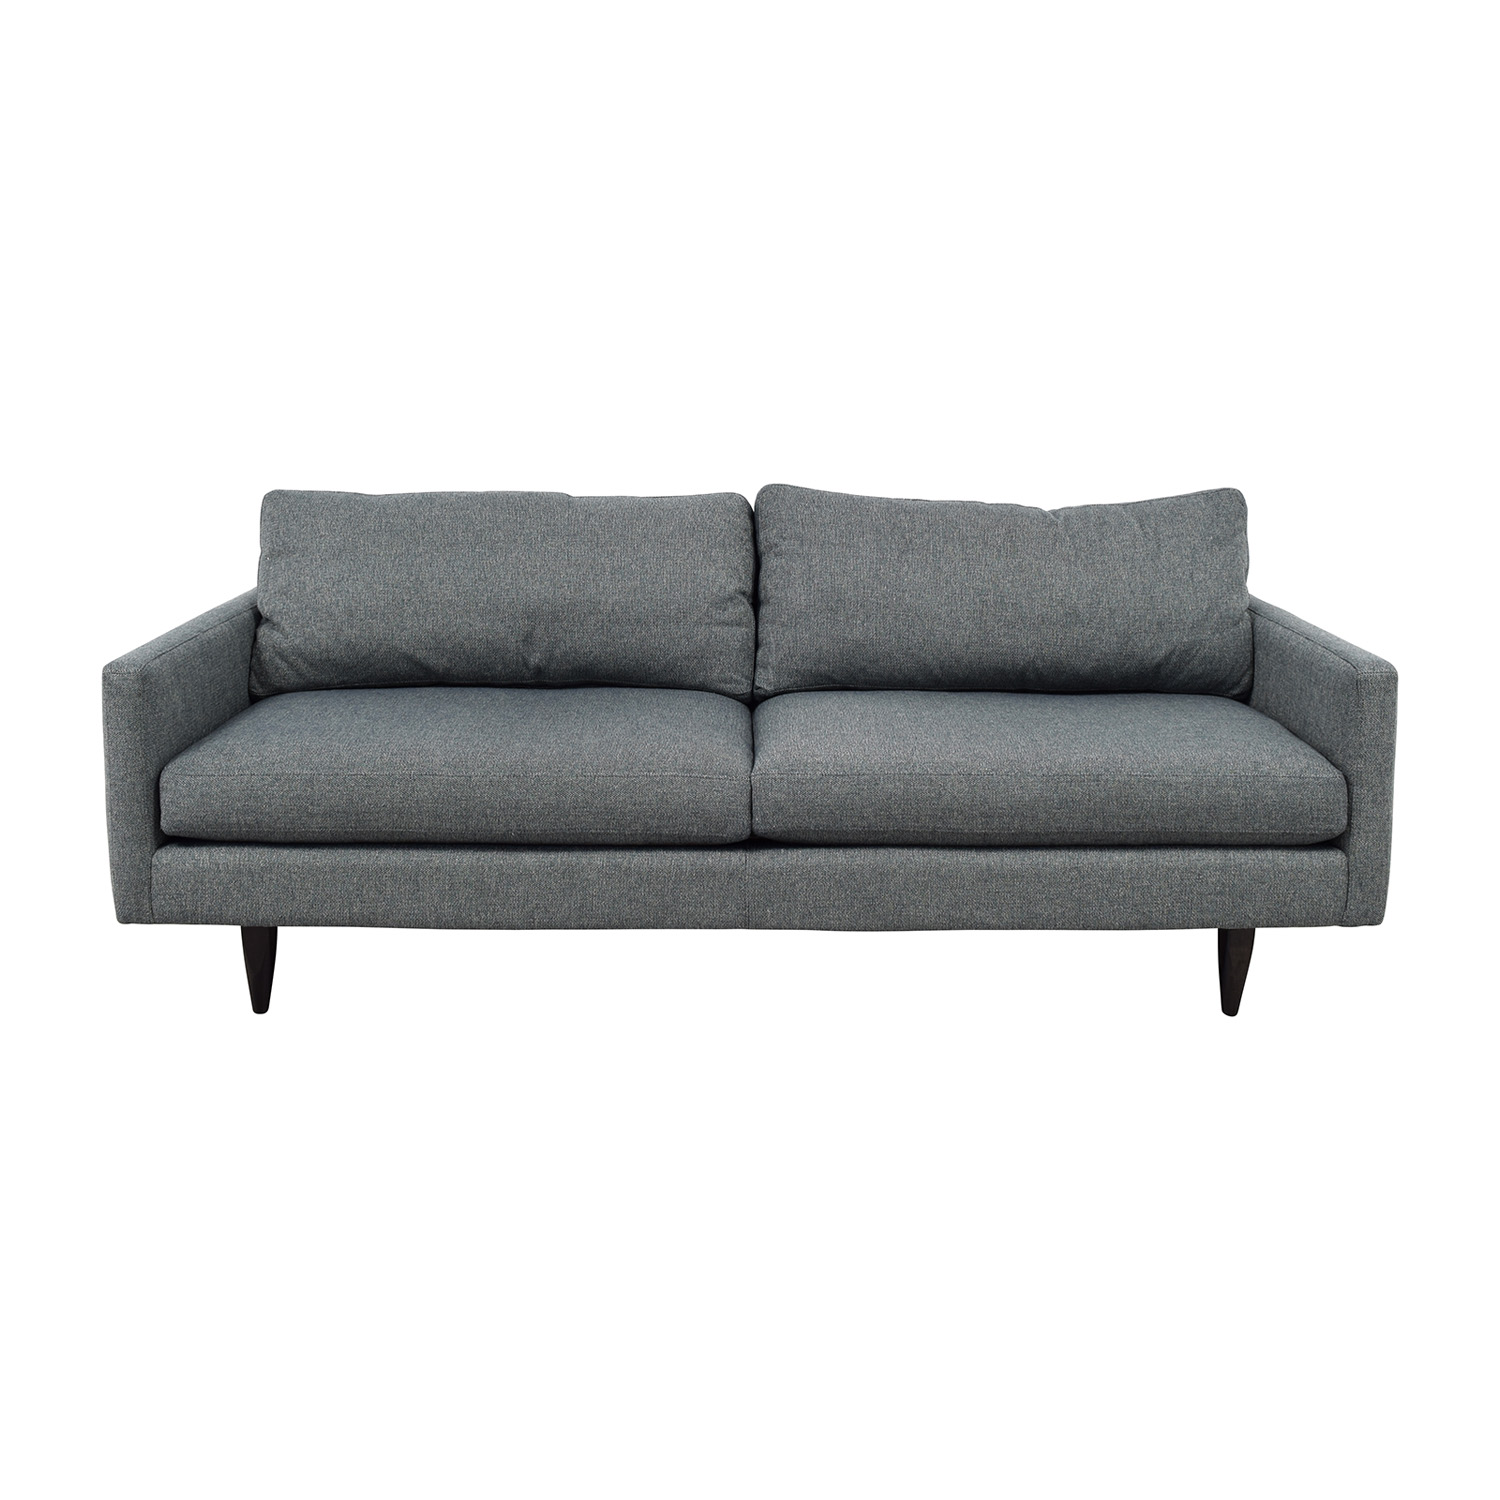 Room & Board Room & Board Blue Grey Two-Cushion Sofa Classic Sofas